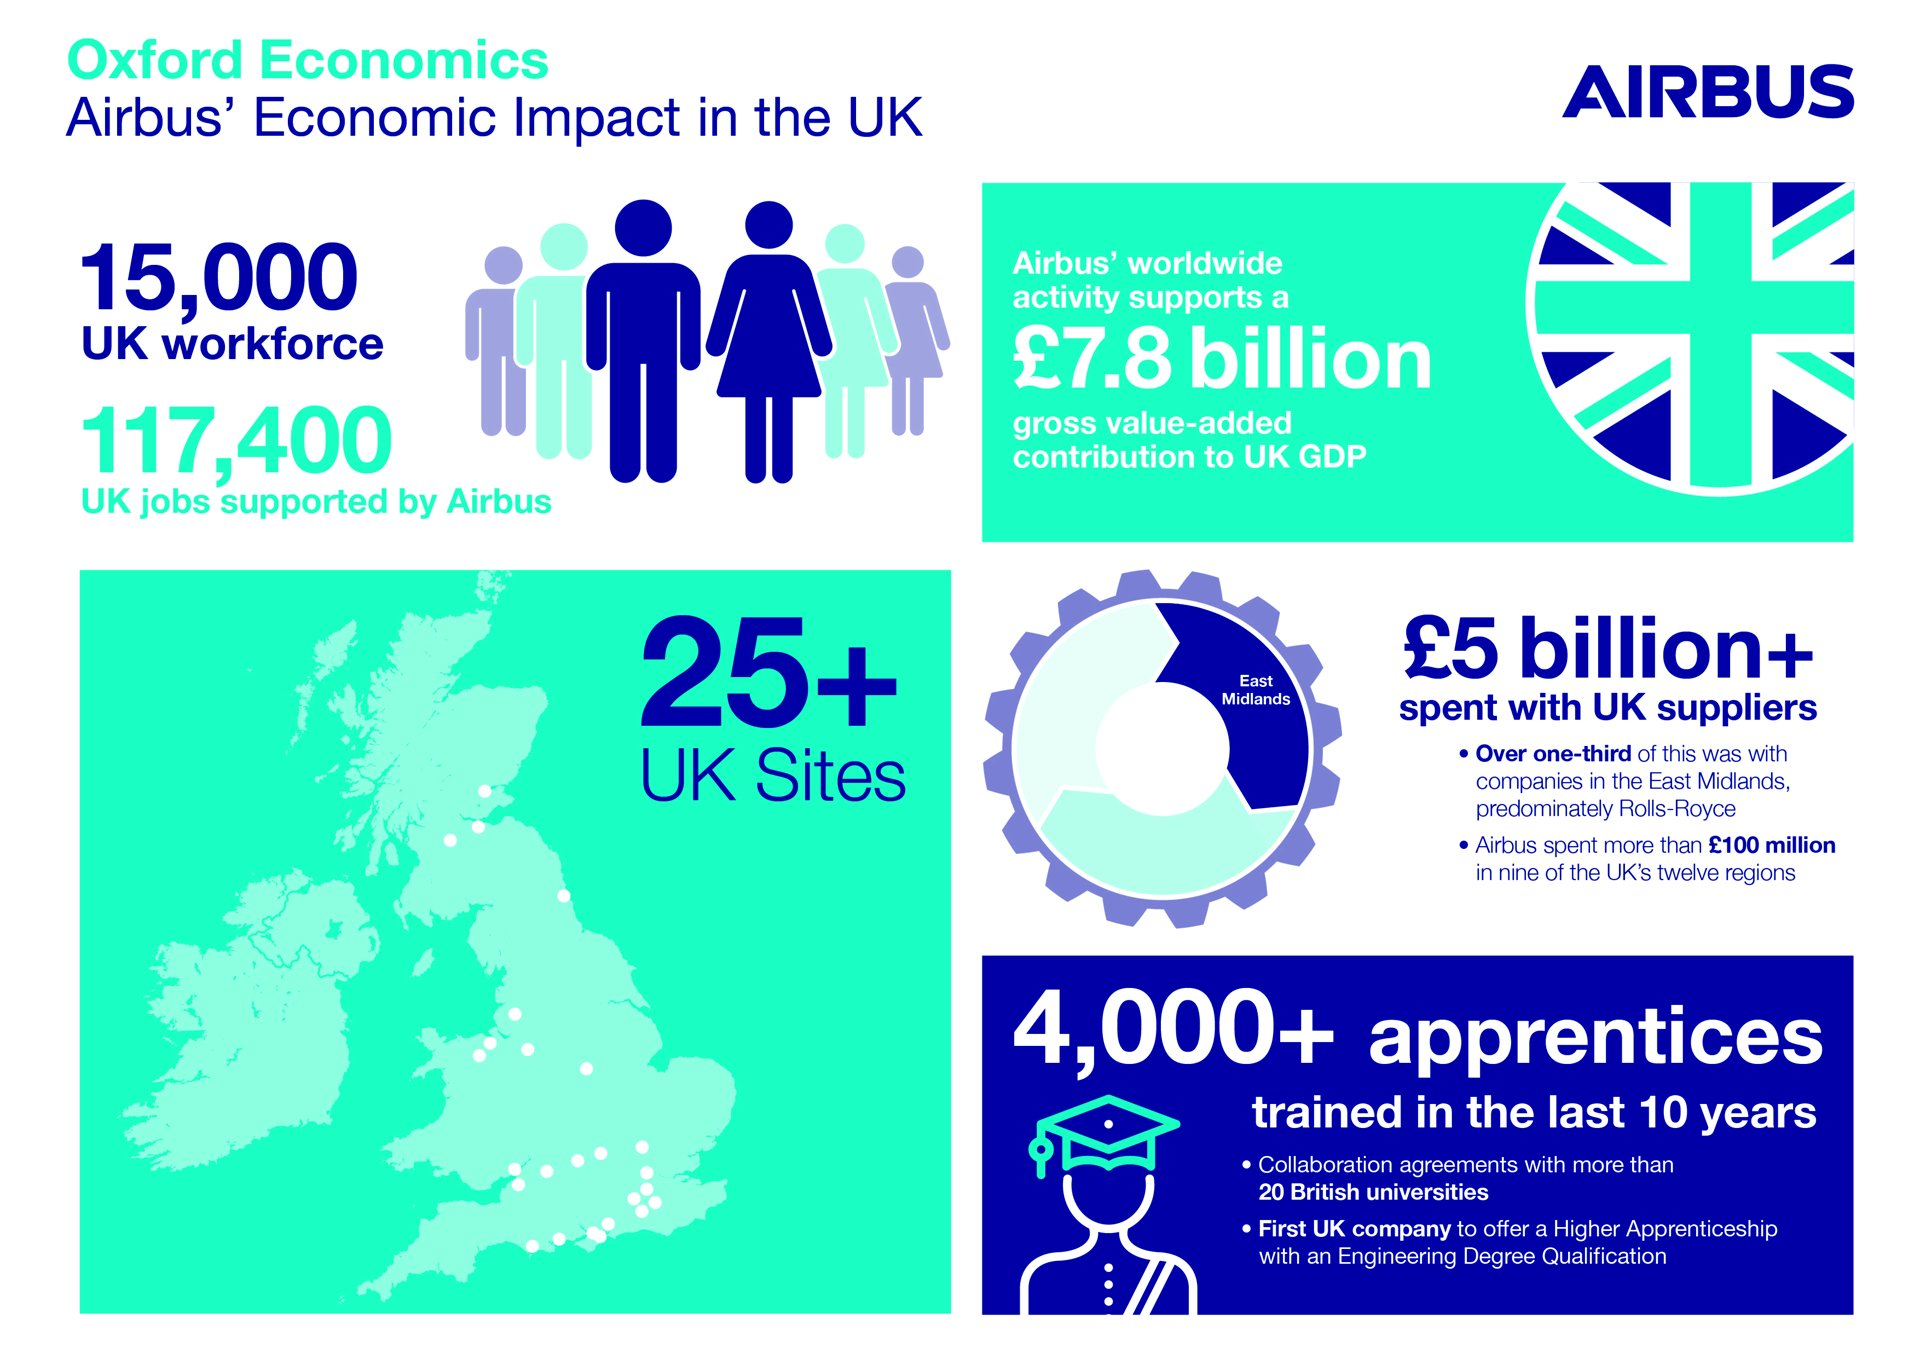 Airbus Oxford Economics Infographic